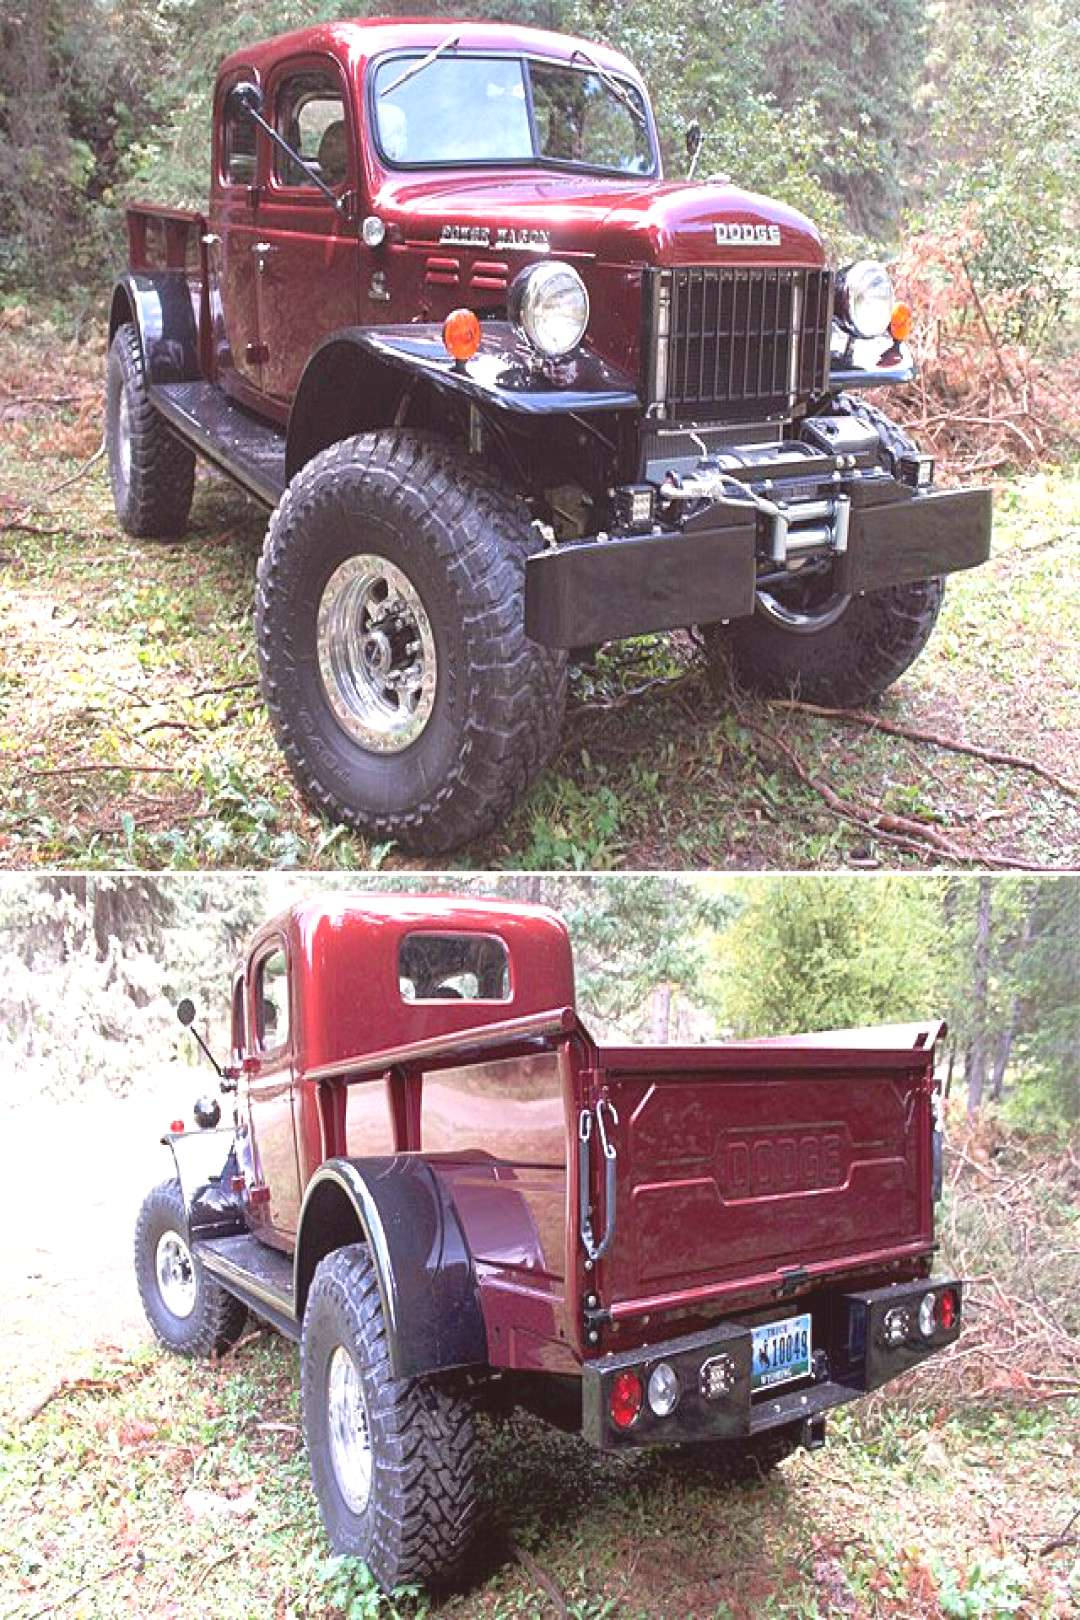 Classic is a Living Legendary American Iron Legacy Classic Trucks Defines Custom Off-Road Badassery